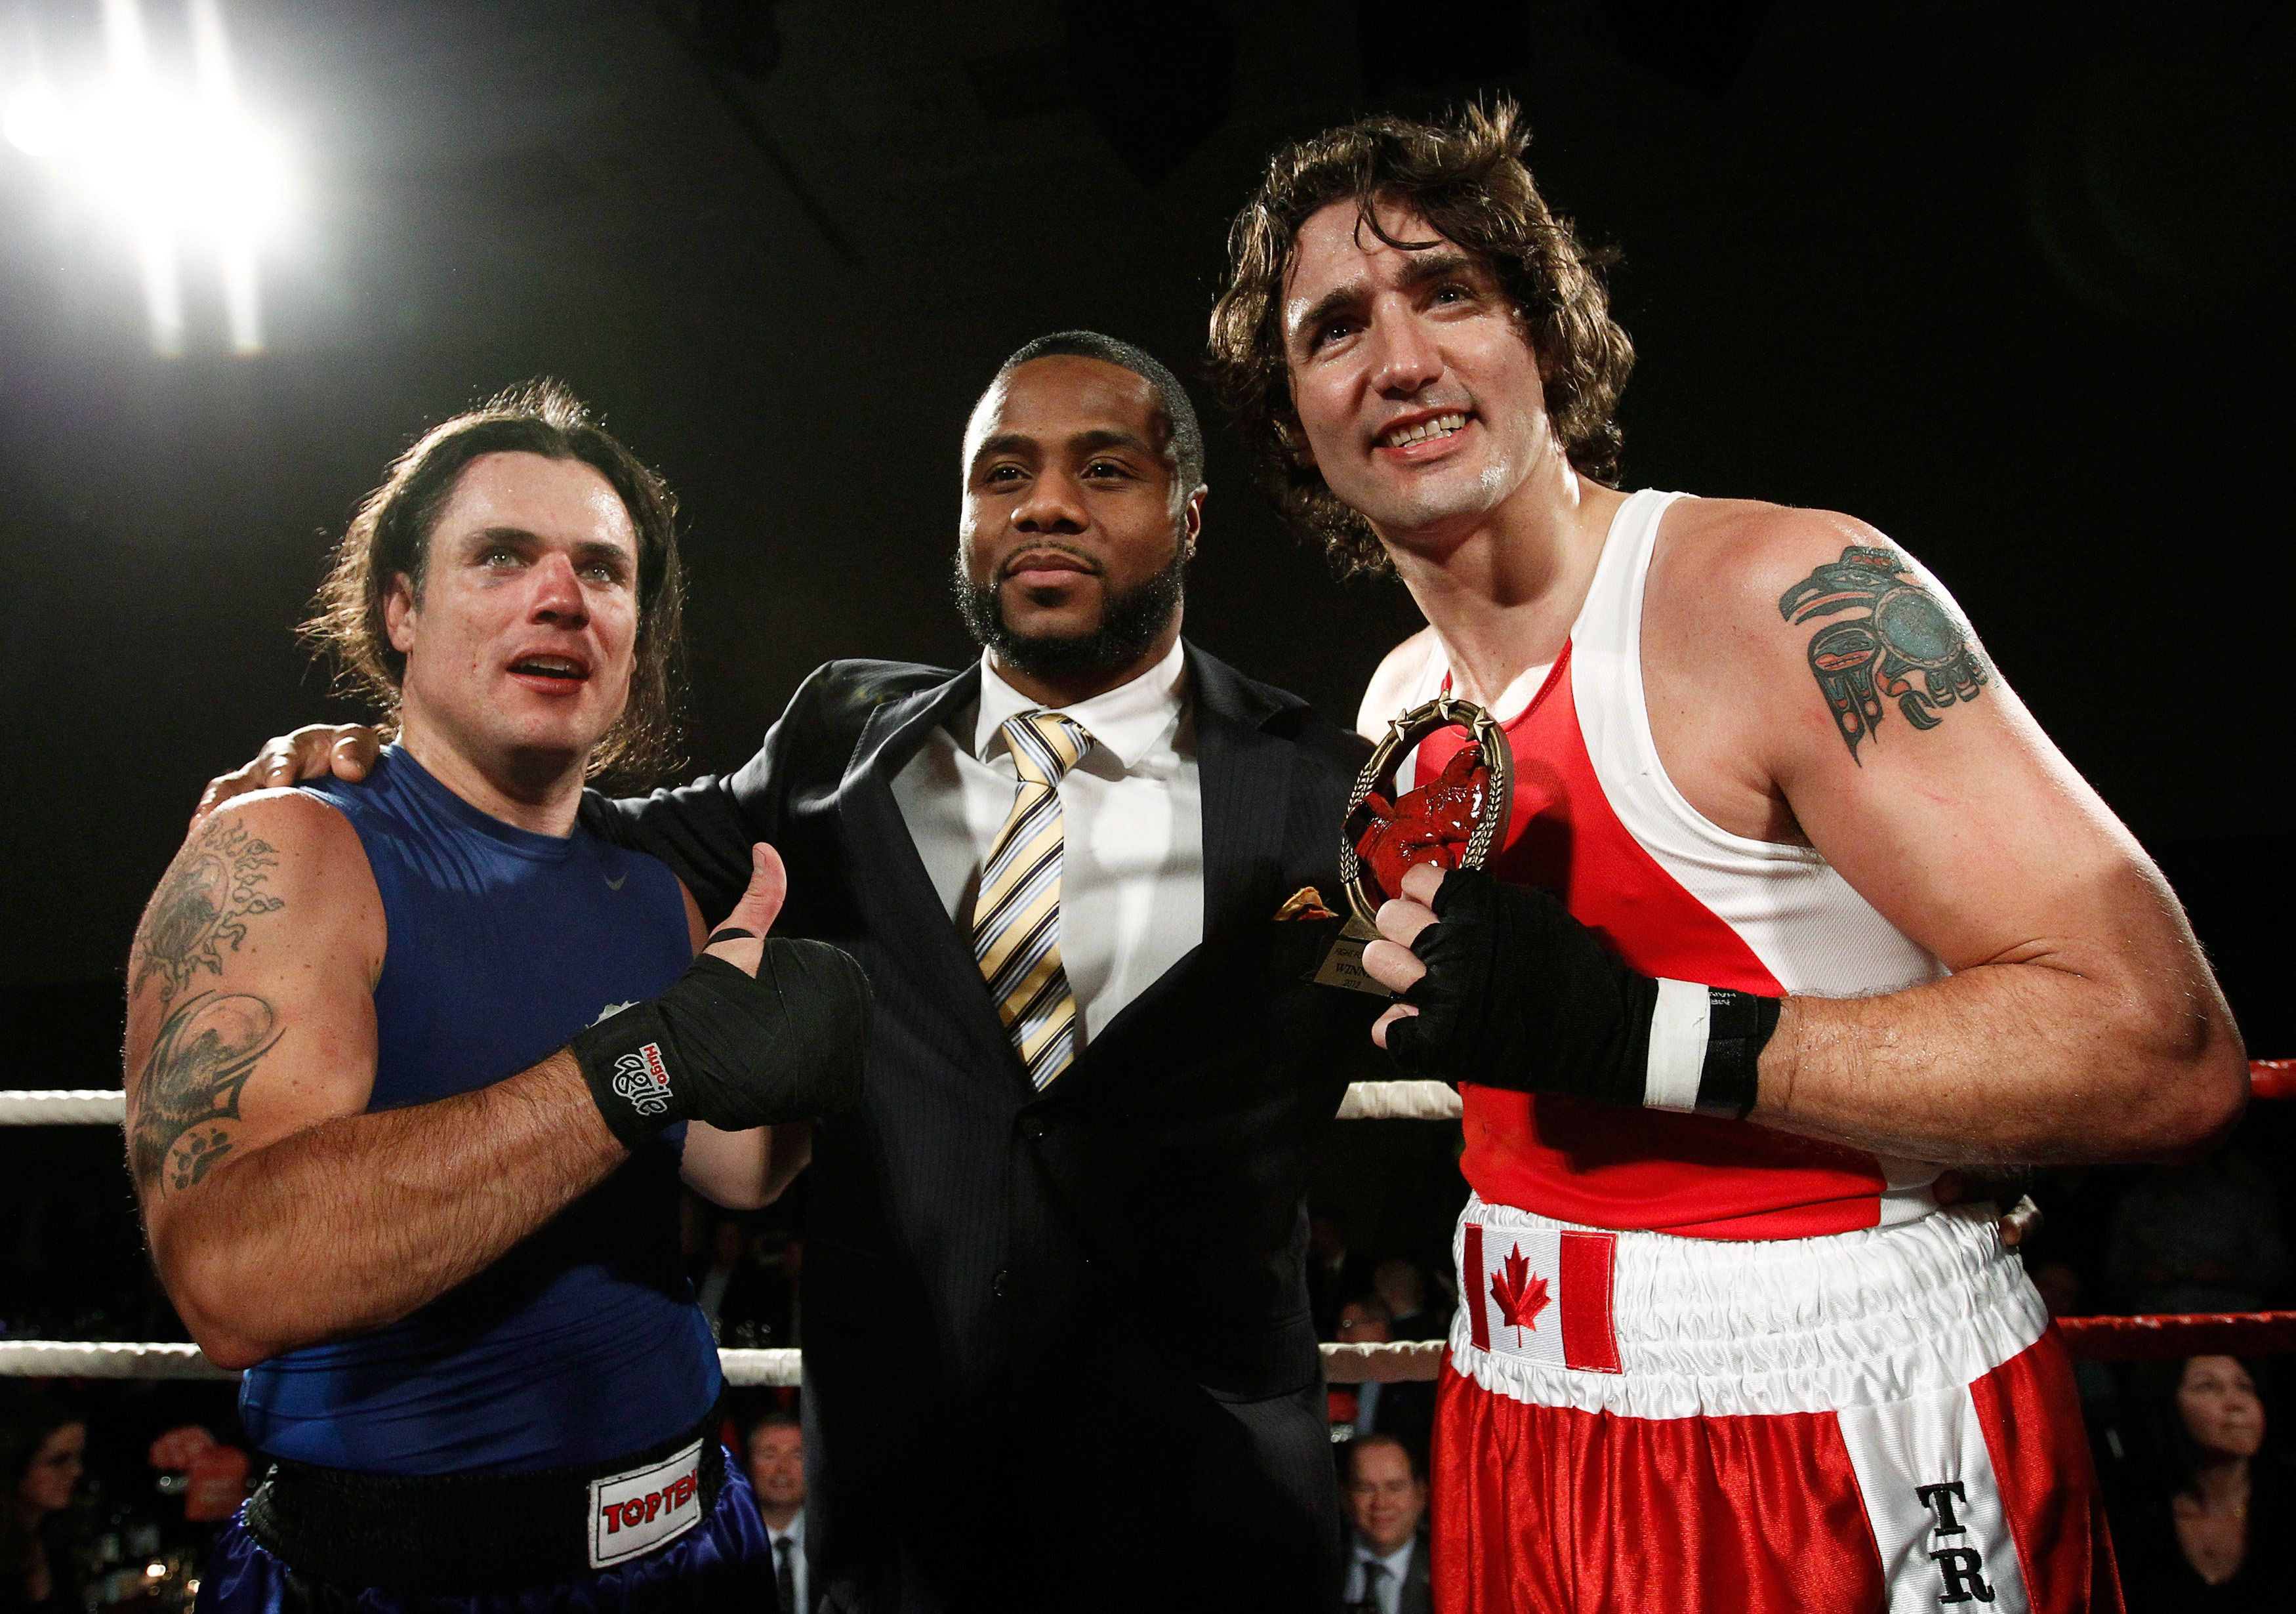 Trudeau (R) and conservative Senator Patrick Brazeau (L) pose after Trudeau defeated Brazeau during their charity boxing matc